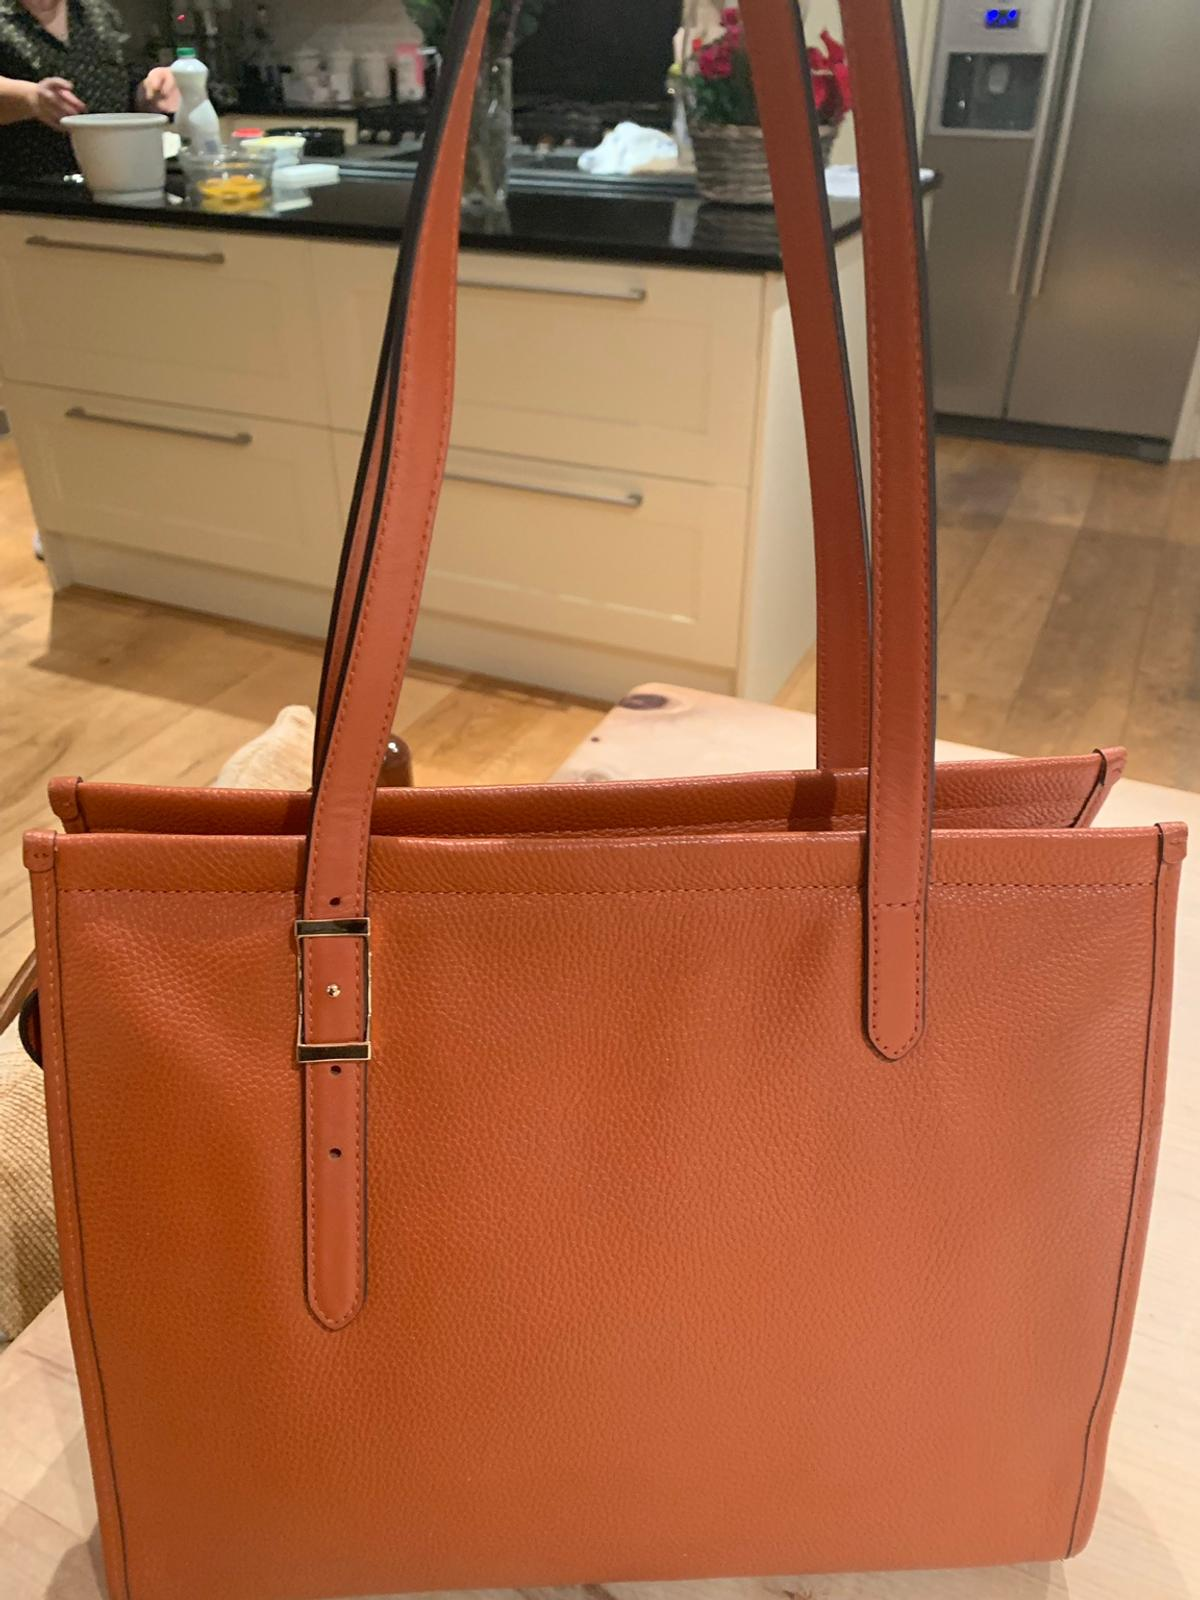 1c99df0e453a4d Genuine used Michael kors bag in N14 London for £120.00 for sale ...